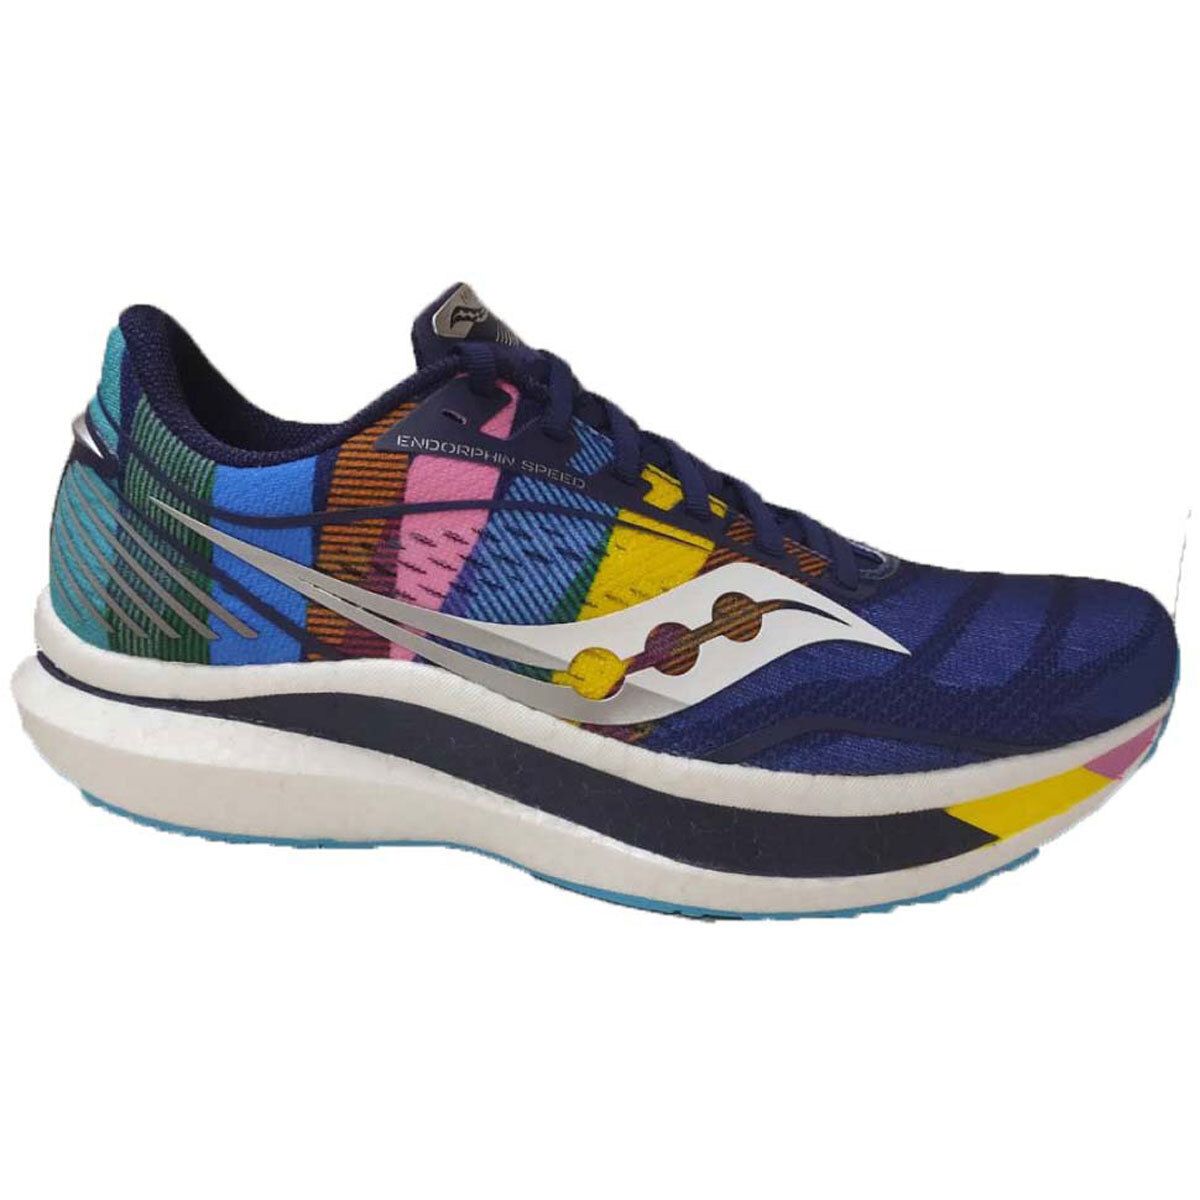 Men's Saucony Endorphin Speed Running Shoe - Color: NYC - Size: 7 - Width: Regular, NYC, large, image 1